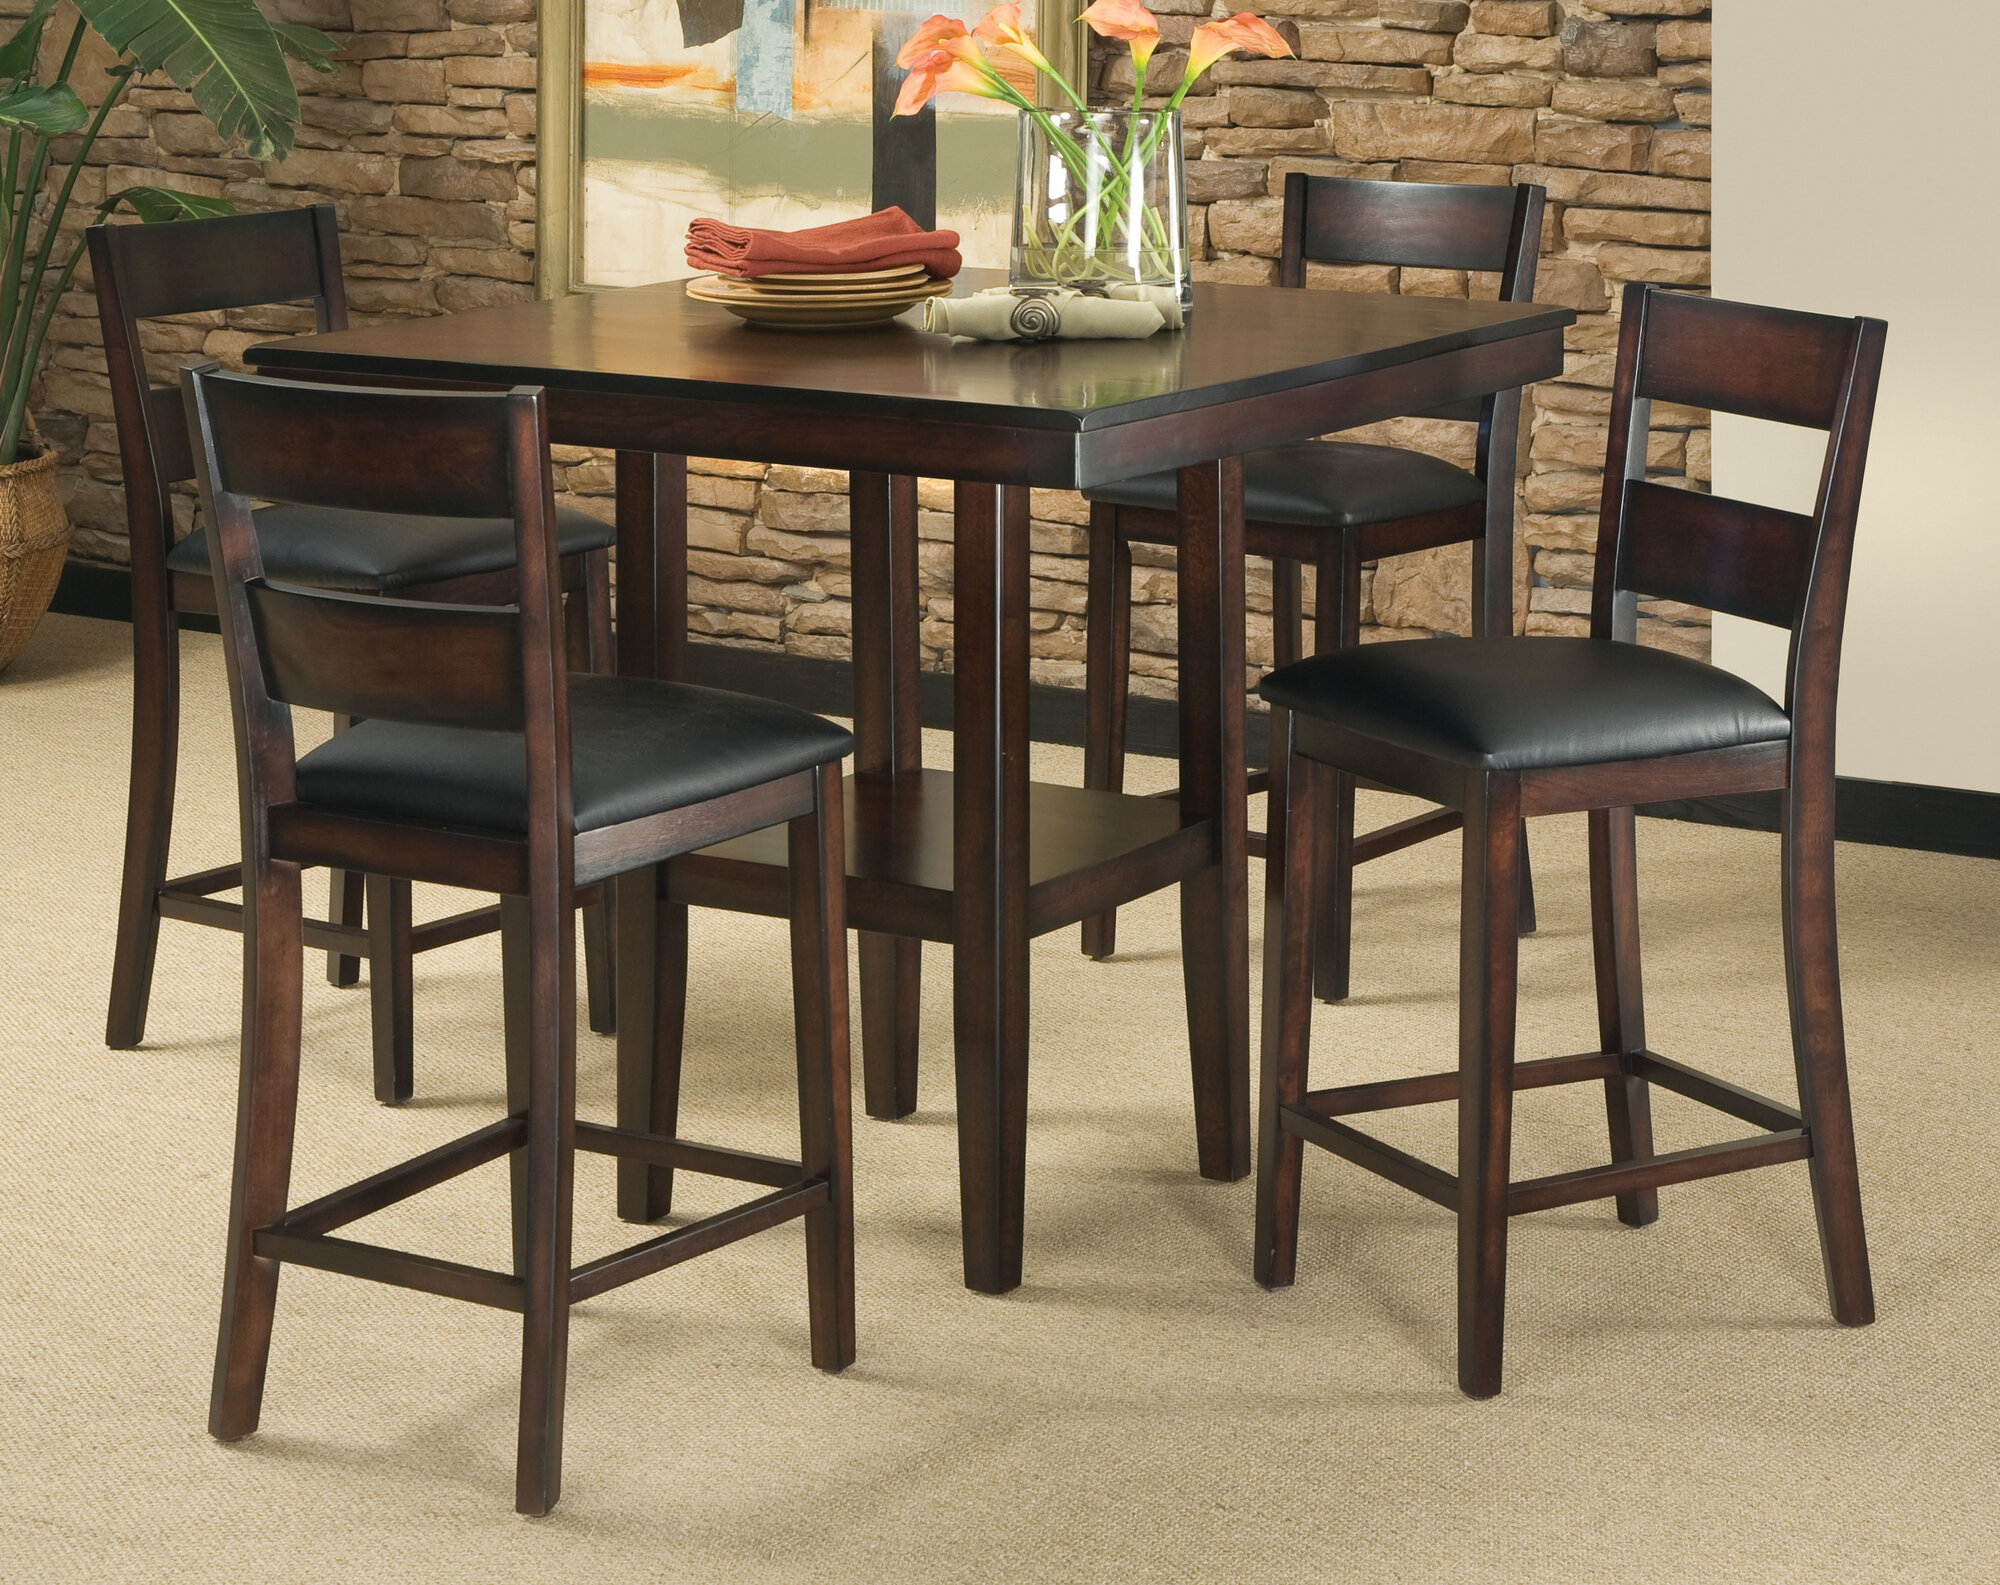 Bad Credit Standard Furniture Pendelton 5 Piece Counter Height Dining Set